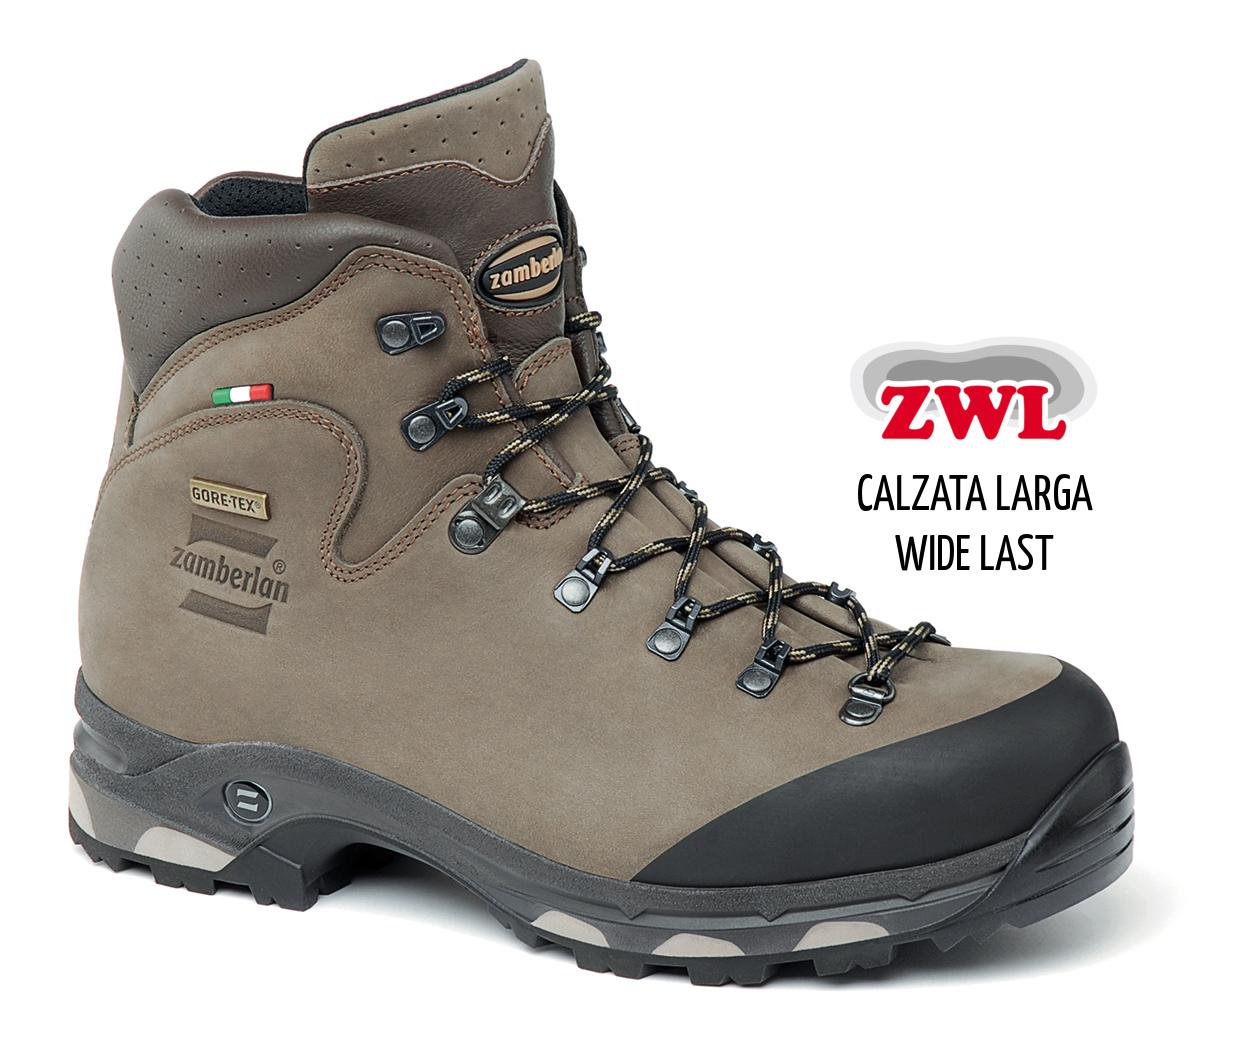 636 BAFFIN GTX RR WIDE LAST - Scarponi  Trekking - Brown